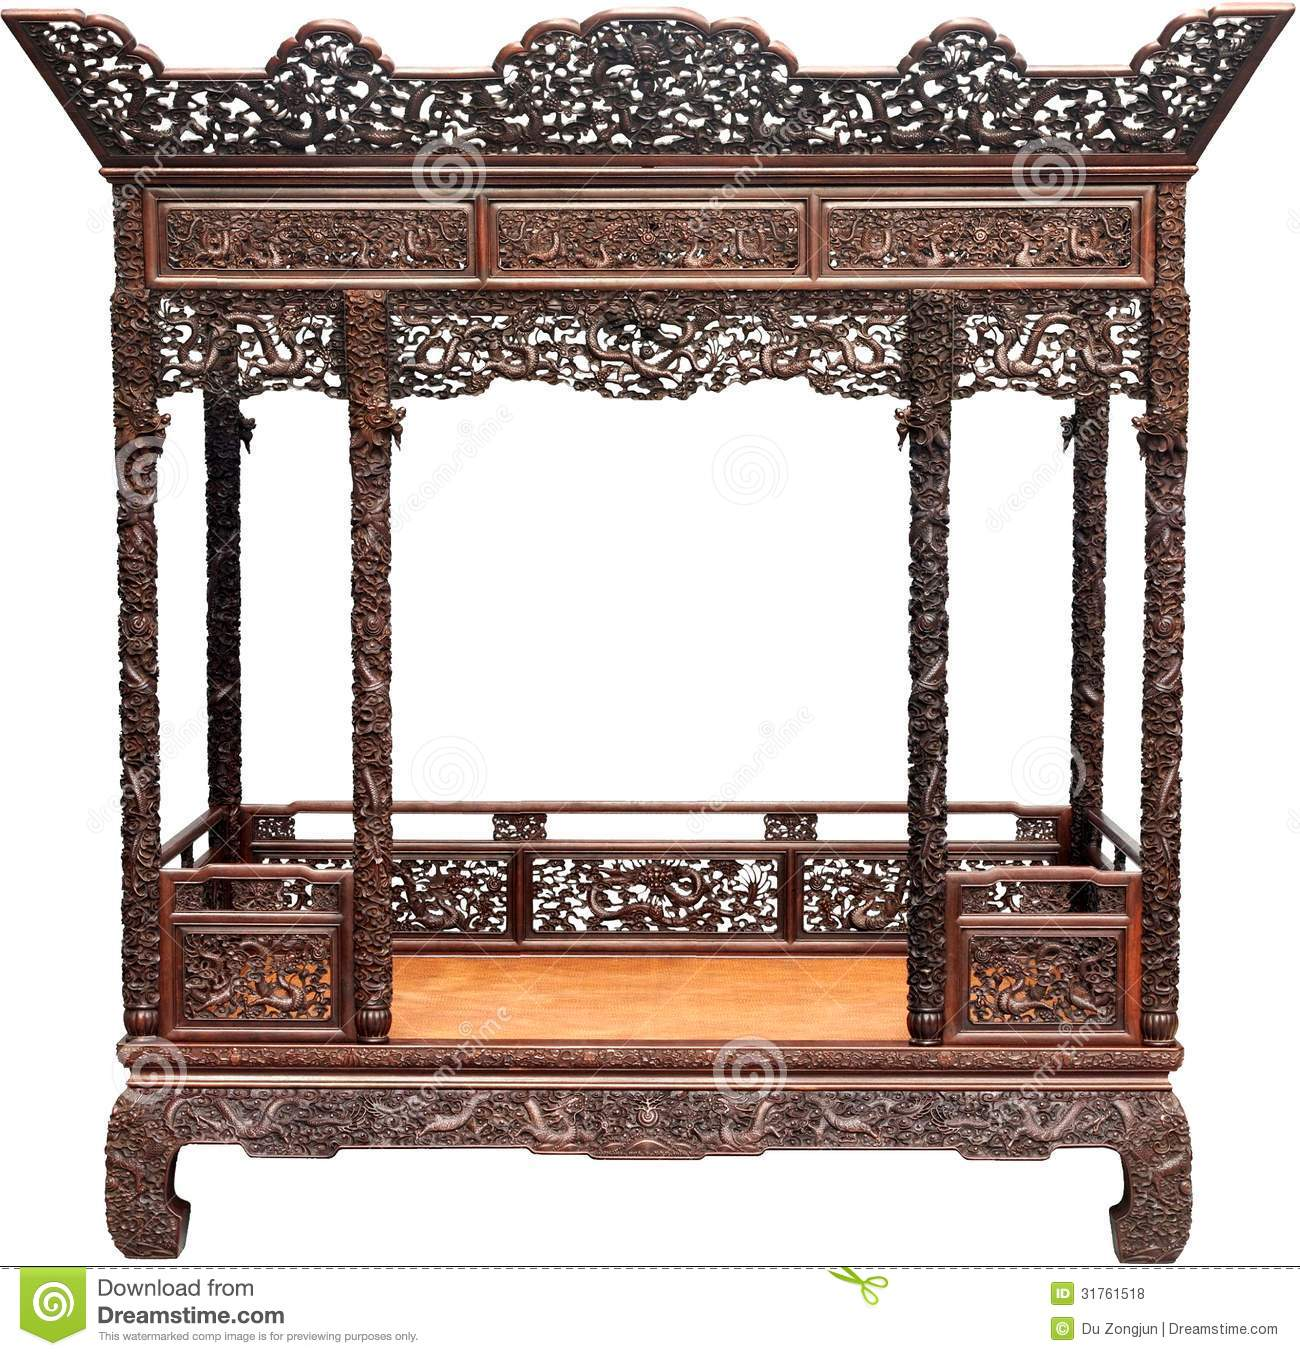 Chinese antique bed royalty free stock photos image for China furniture bed